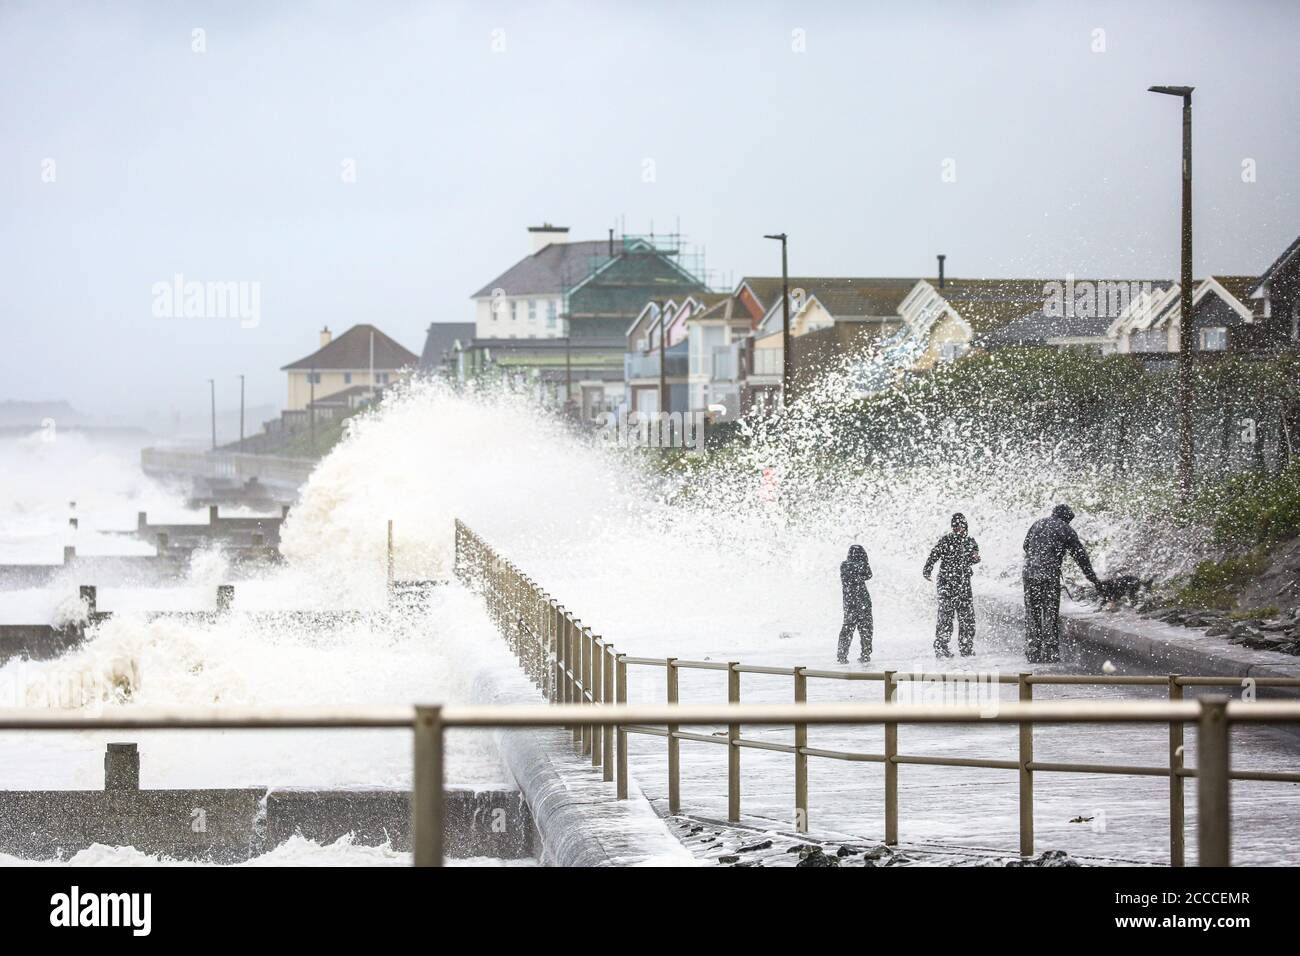 Tywyn, UK. 21st Aug, 2020. UK. Storm Ellen brings gale force winds and big waves to the Welsh coastal town of Tywn. Credit: Jon Freeman/Alamy Live News Stock Photo